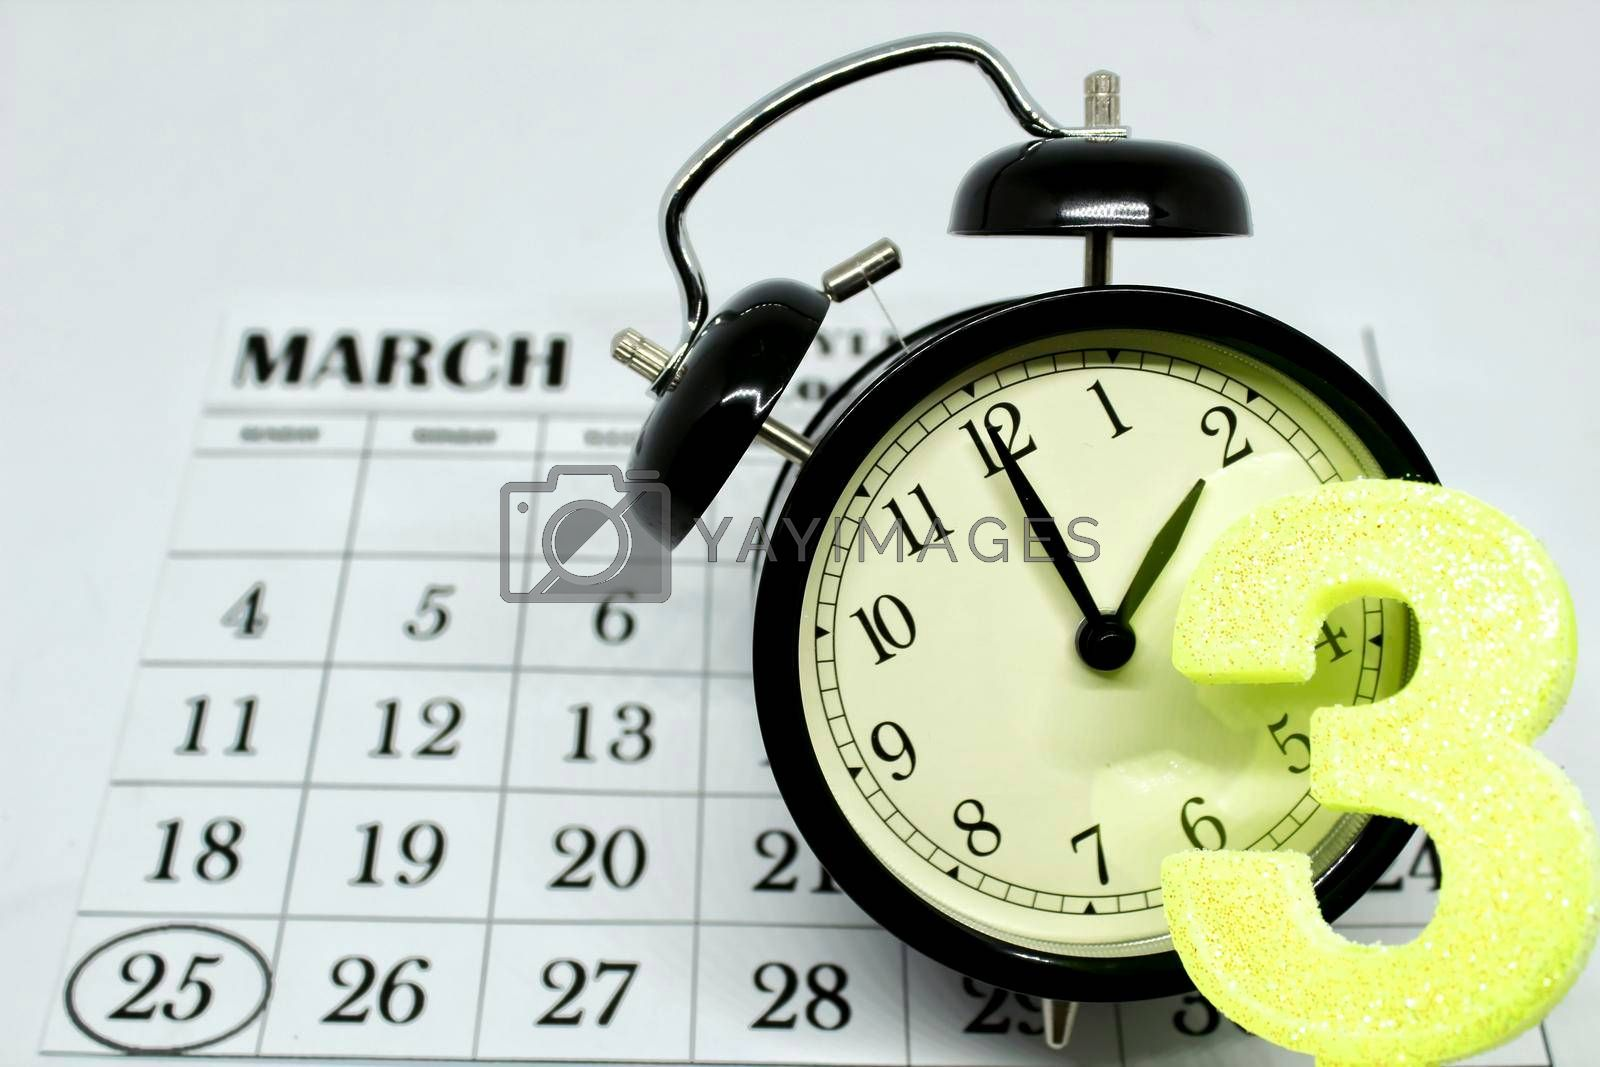 Daylight Savings Spring Forward sunday at 2:00 a.m. March 25 date indicated in the calendar.